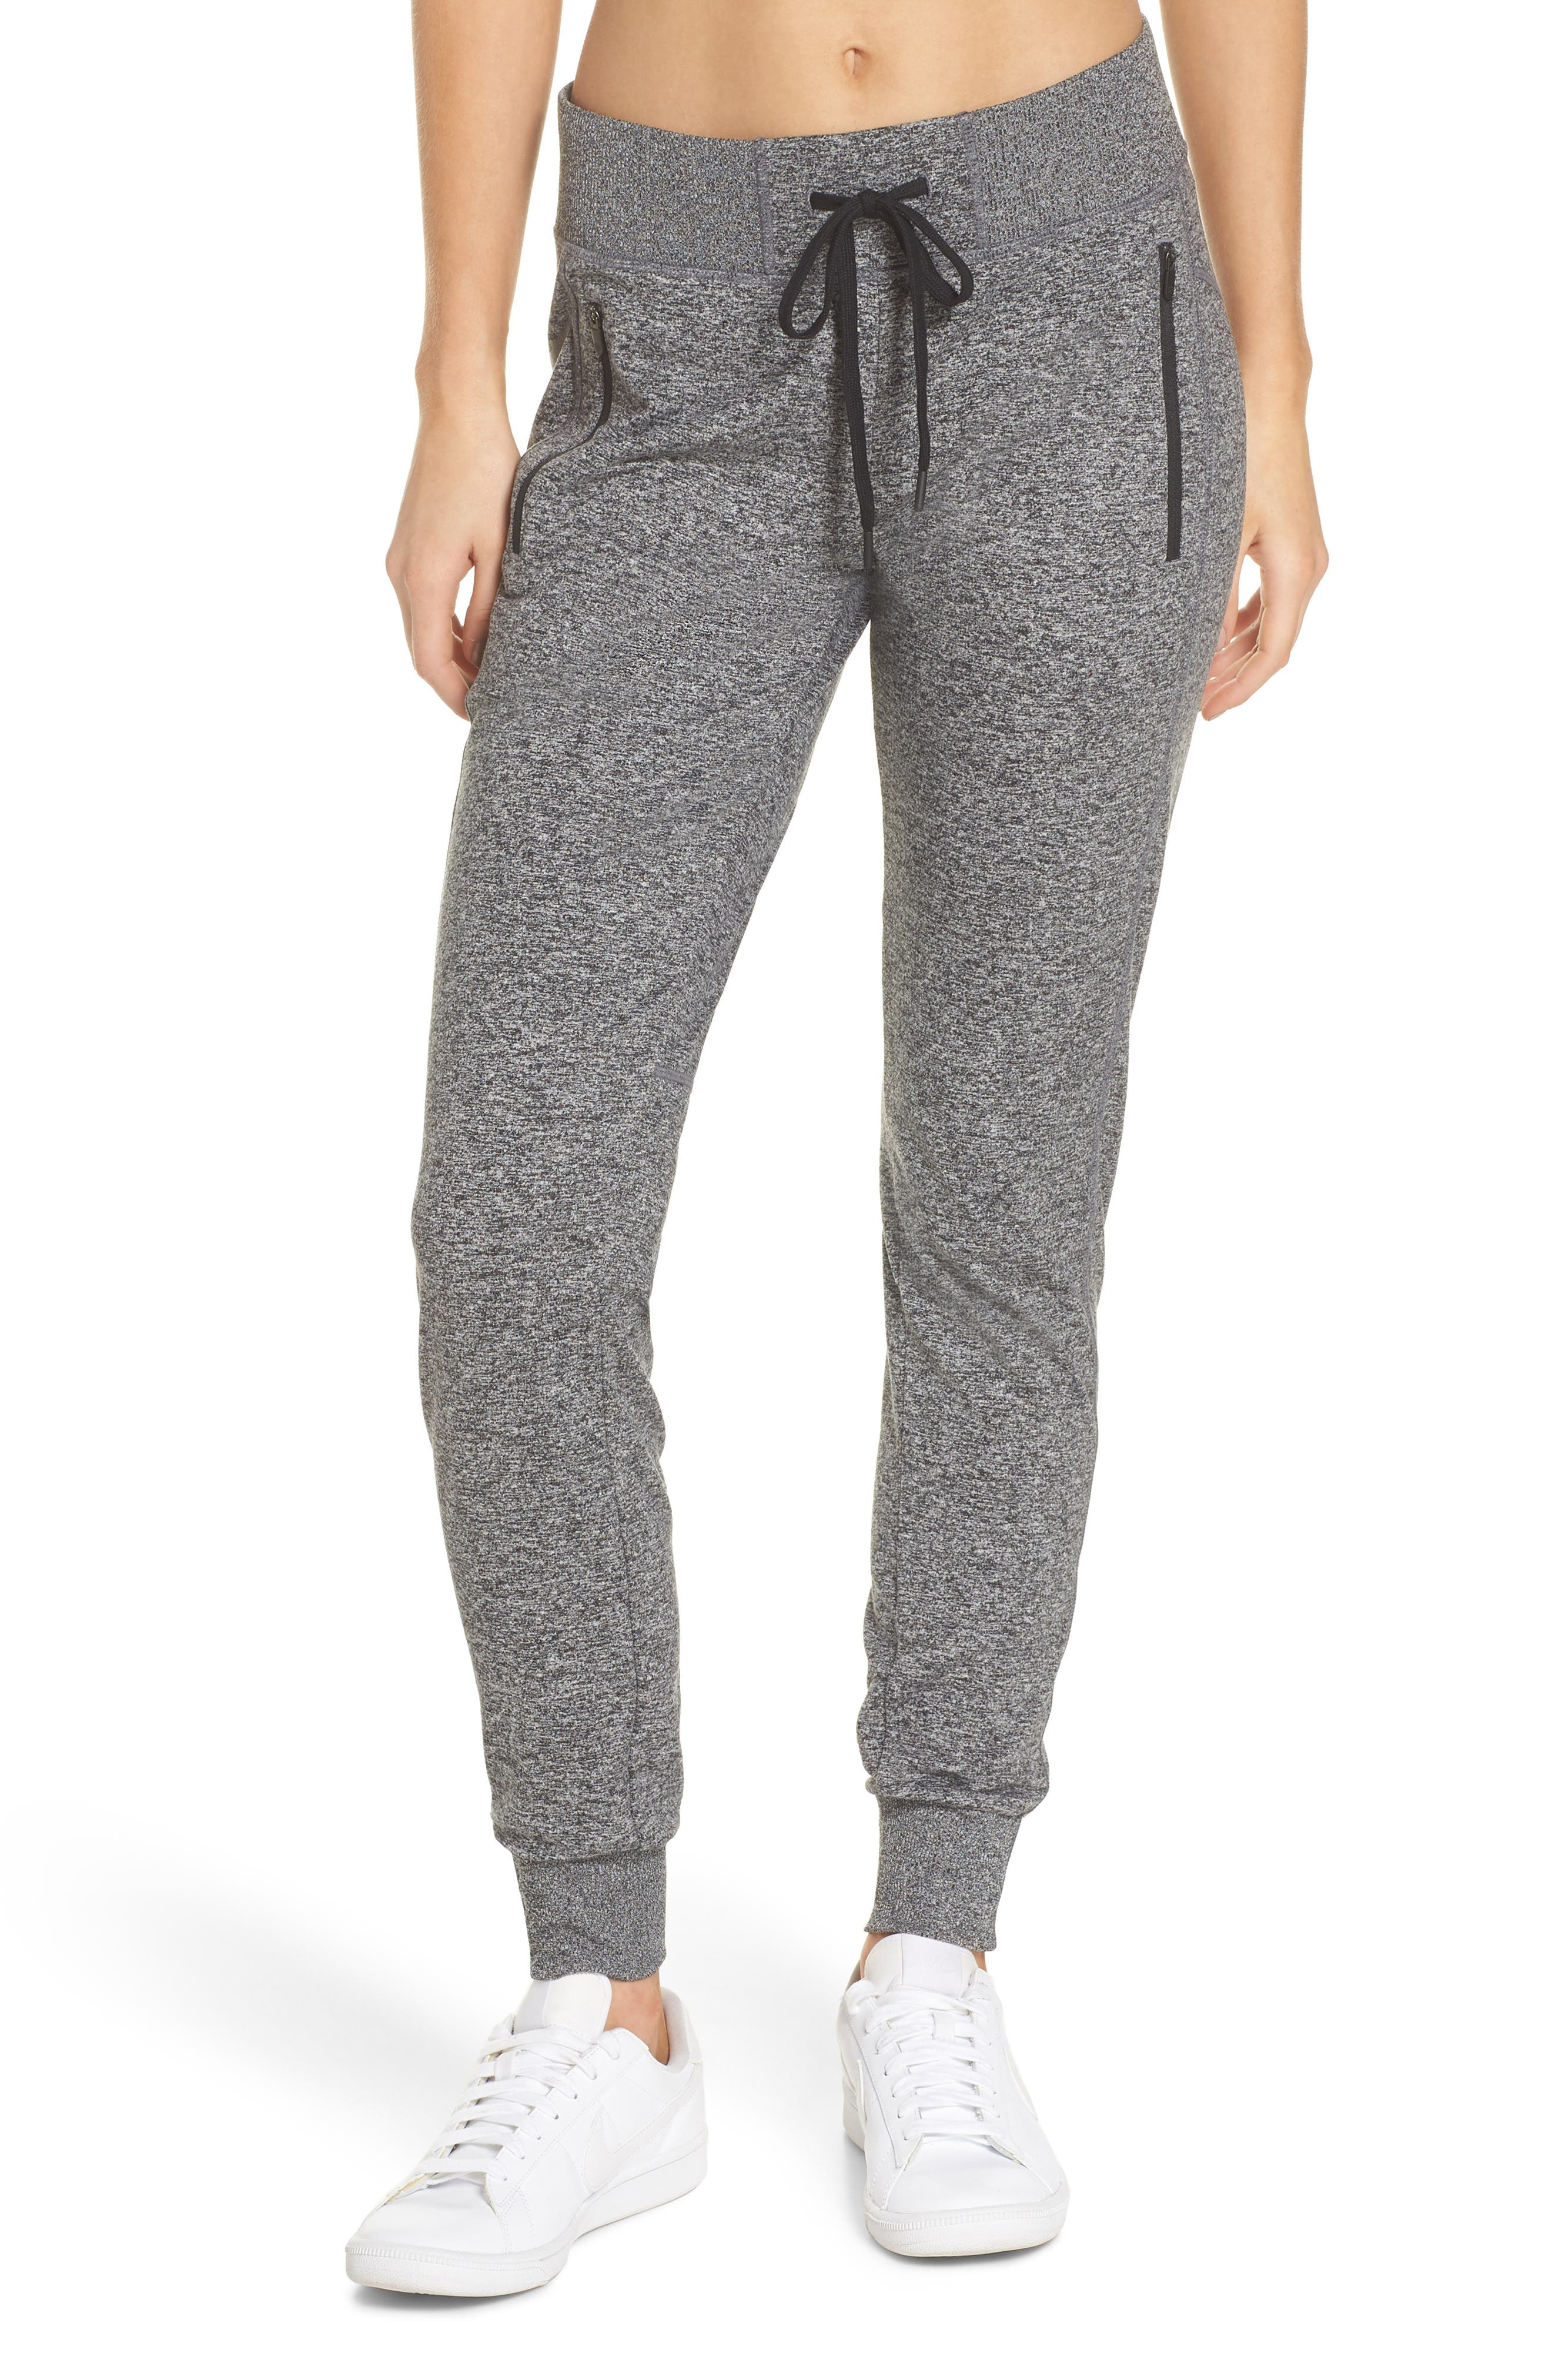 Zella Taryn Ultrasoft Recycled Jogger Pants (Regular & Plus Size)